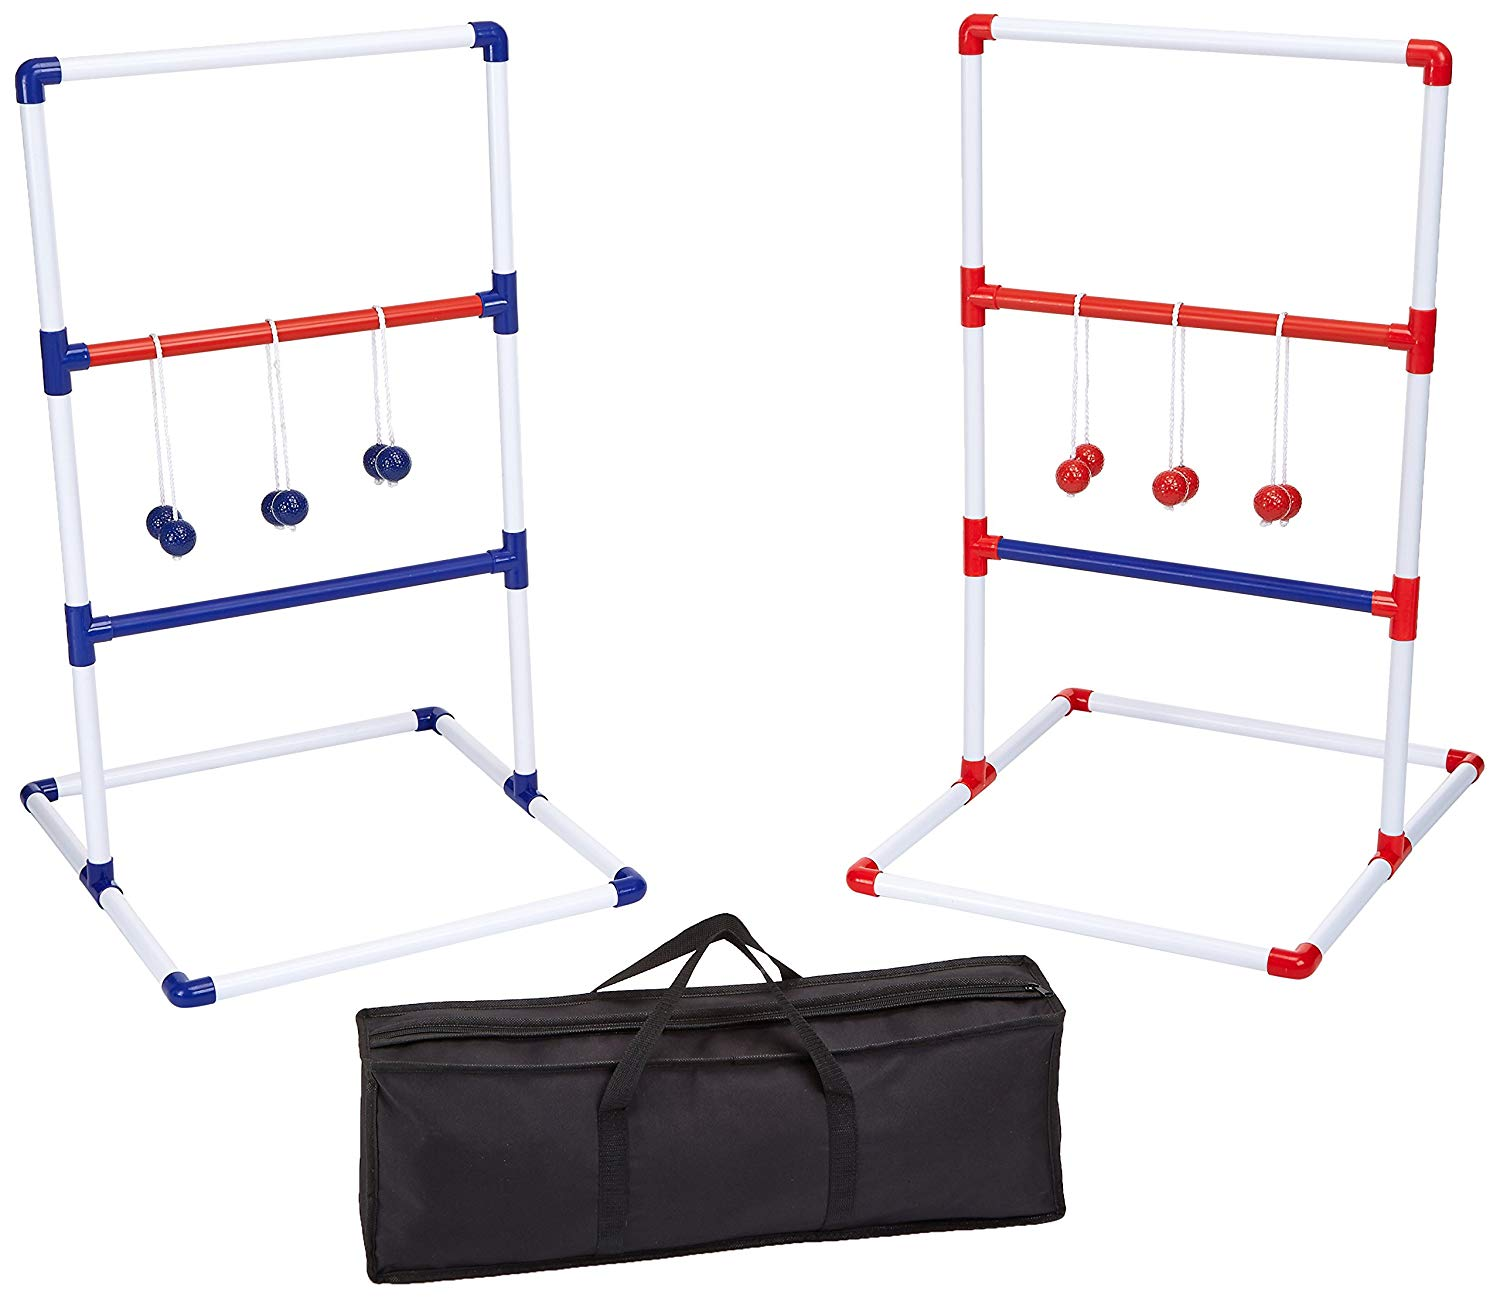 AmazonBasics Ladder Toss Outdoor Lawn Game Set with Soft Carrying Case